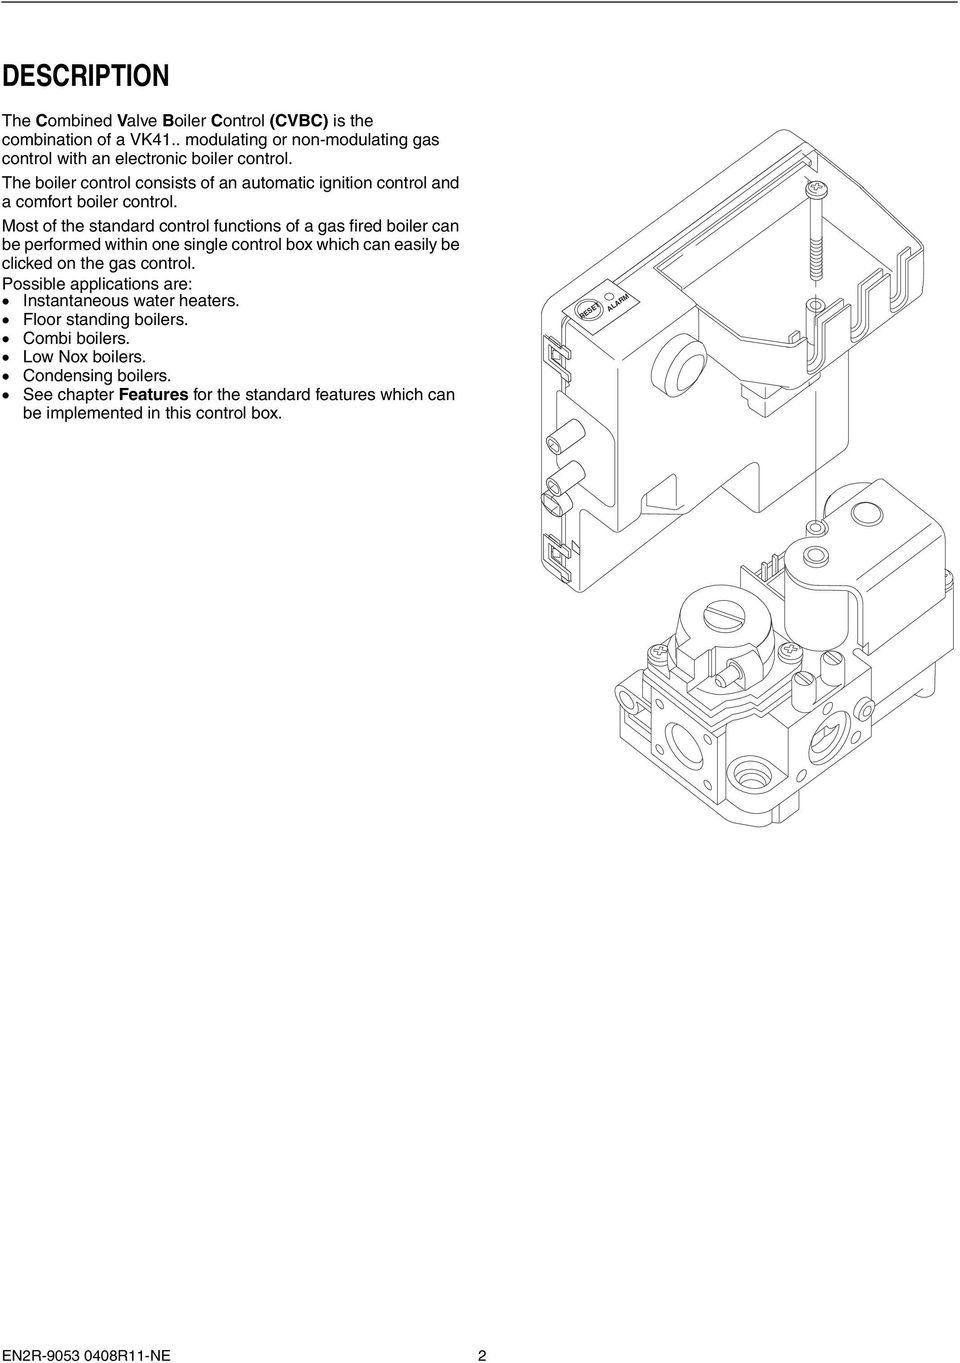 s4965 series combined valve and boiler control systems